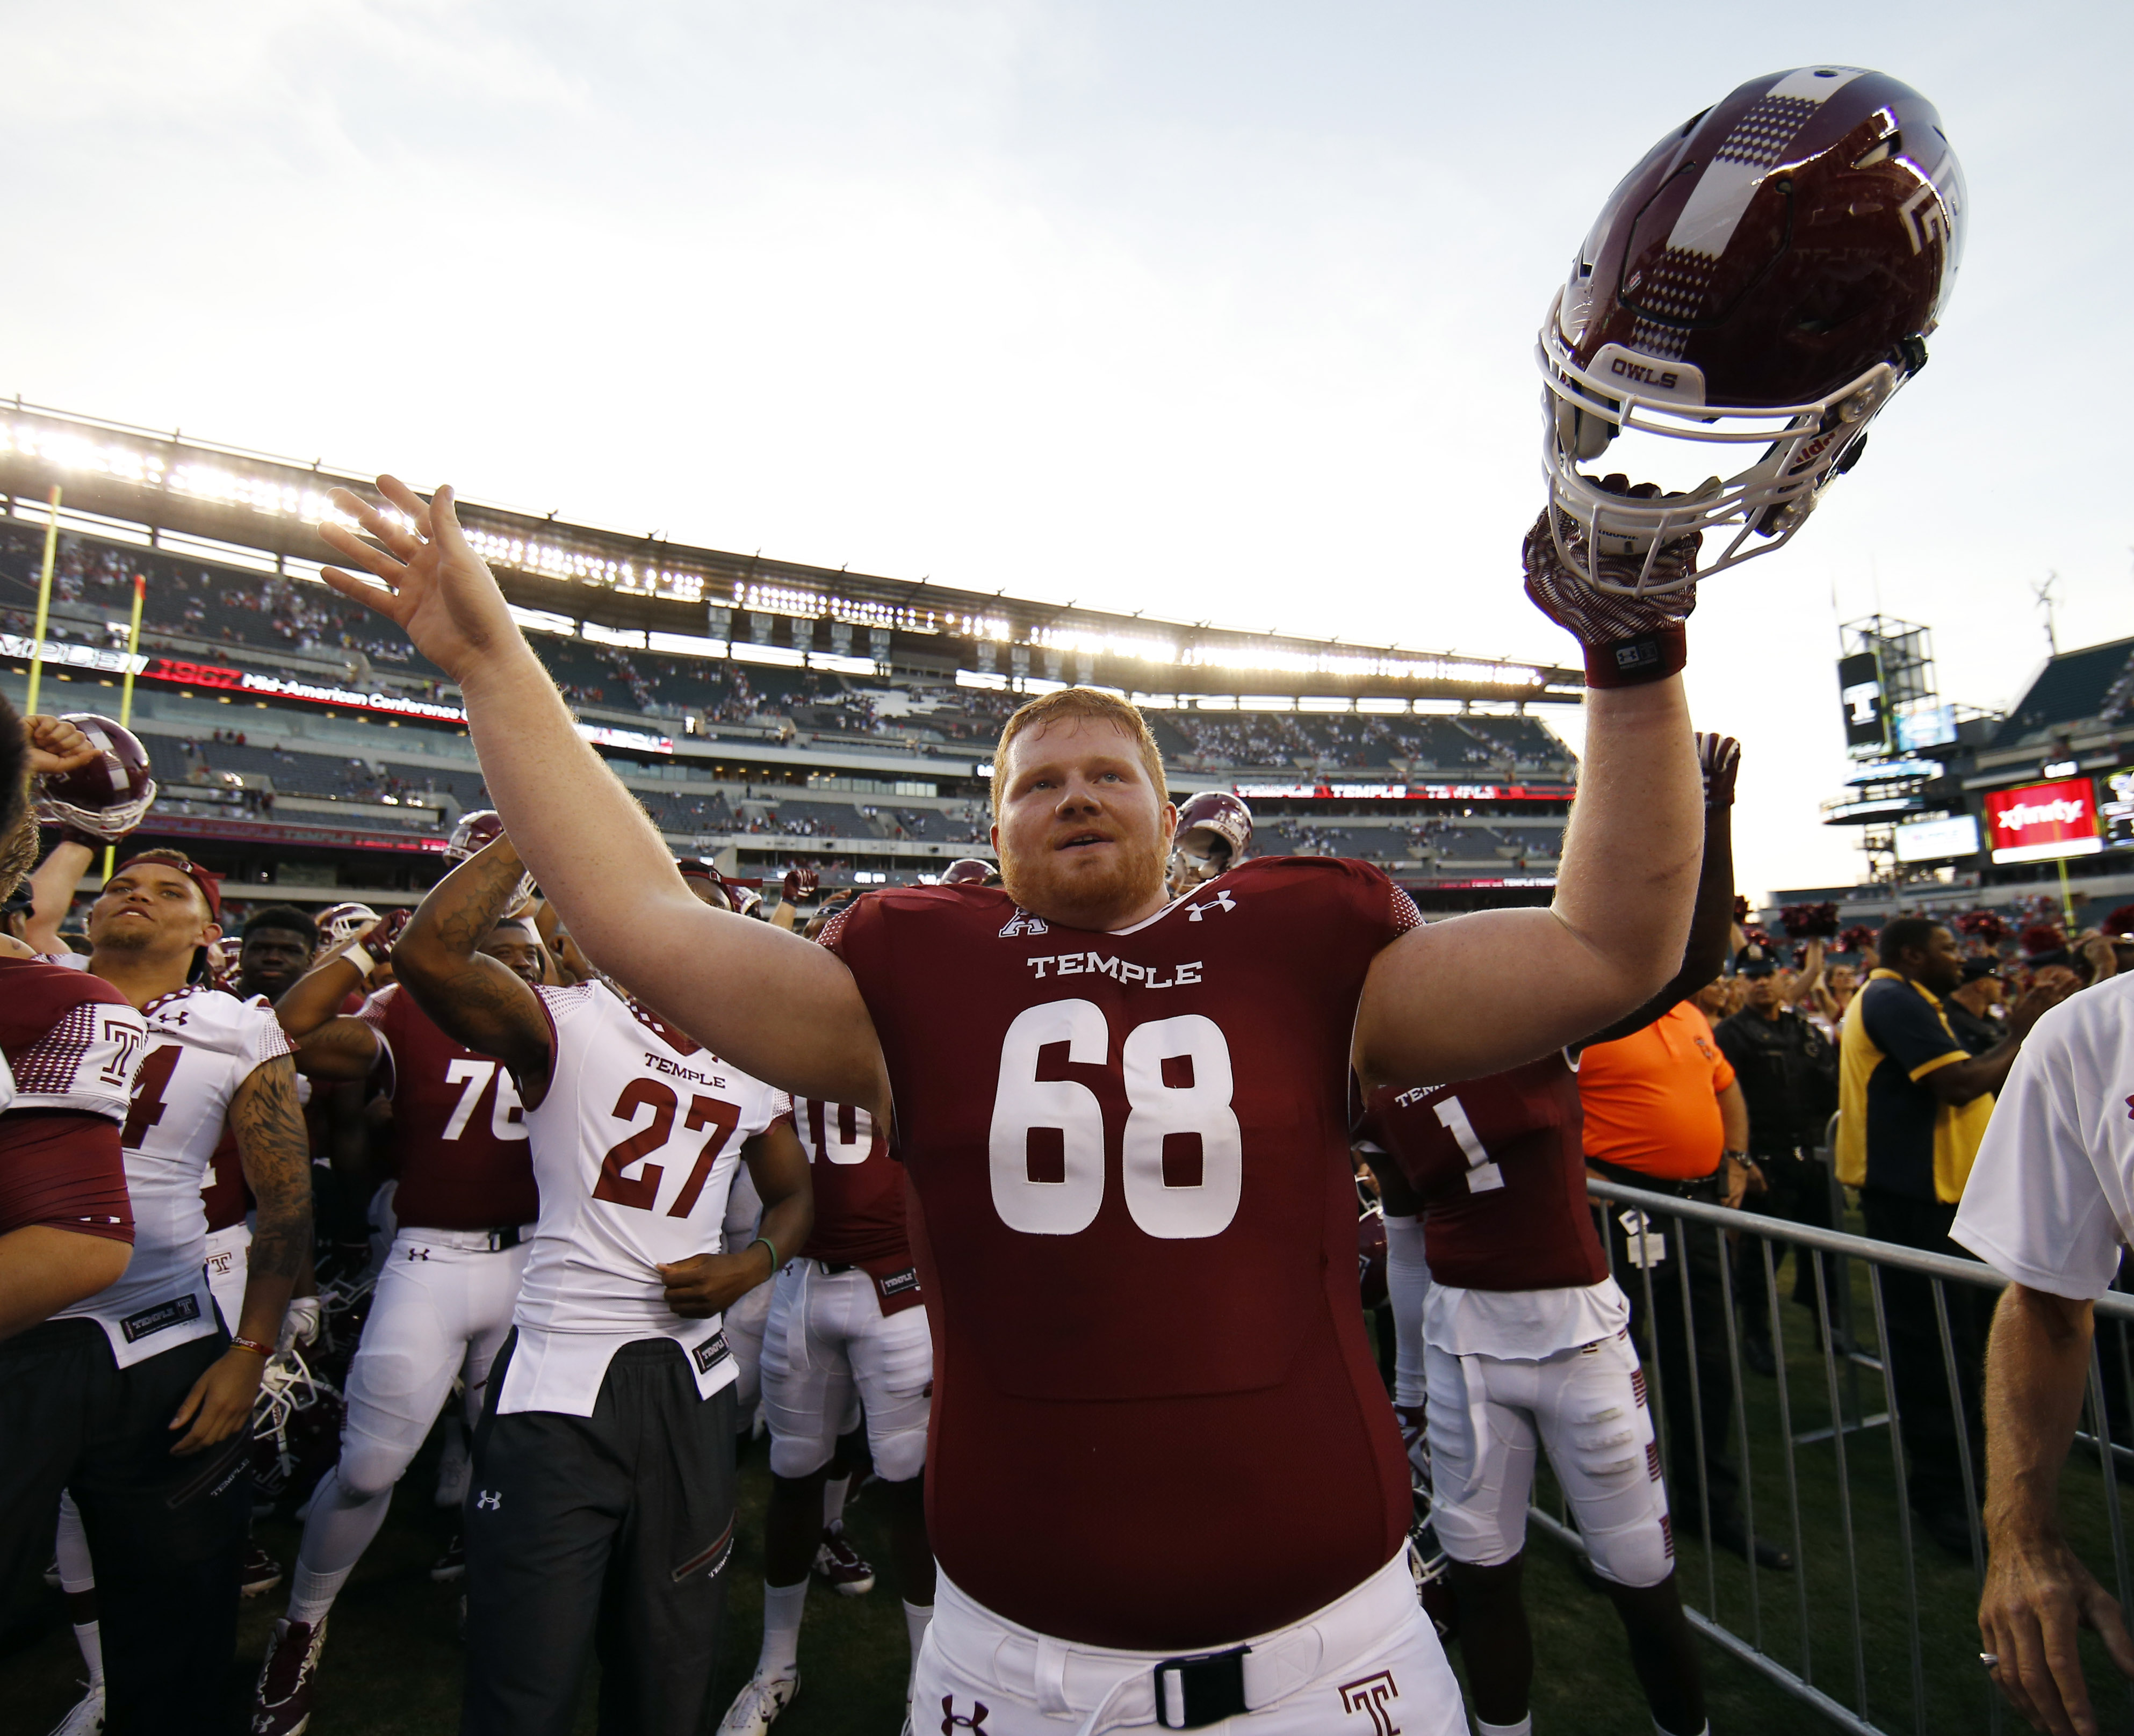 Temple's Brendan McGowan celebrates after their 27-10 win over Penn State in an NCAA college football game, Saturday, Sept. 5, 2015, in Philadelphia. (AP Photo/Matt Slocum)